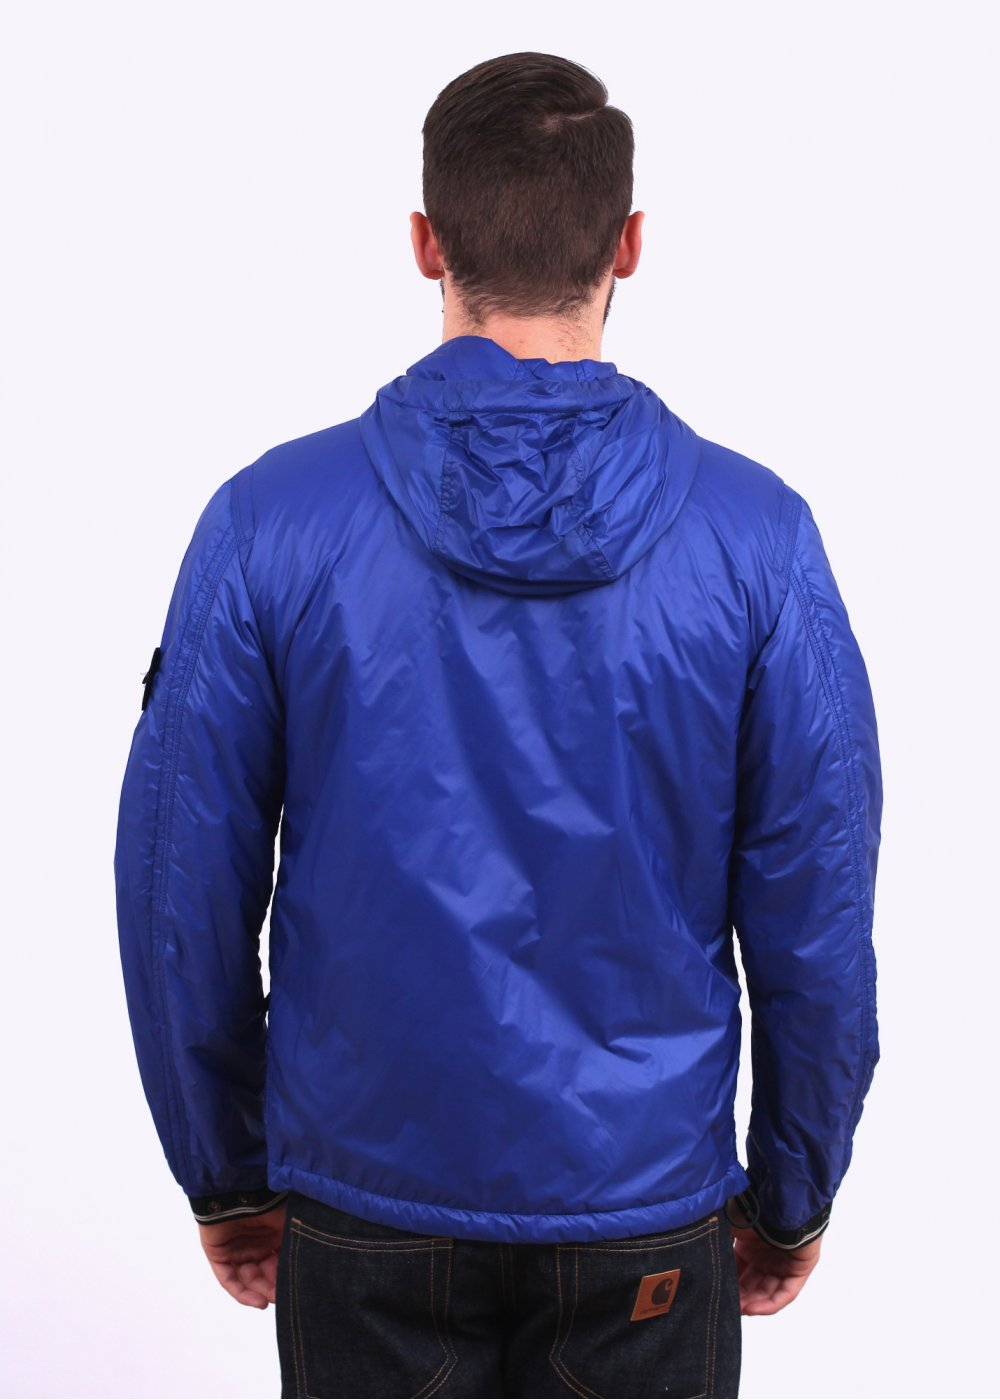 stone island micro rip stop jacket royal blue. Black Bedroom Furniture Sets. Home Design Ideas